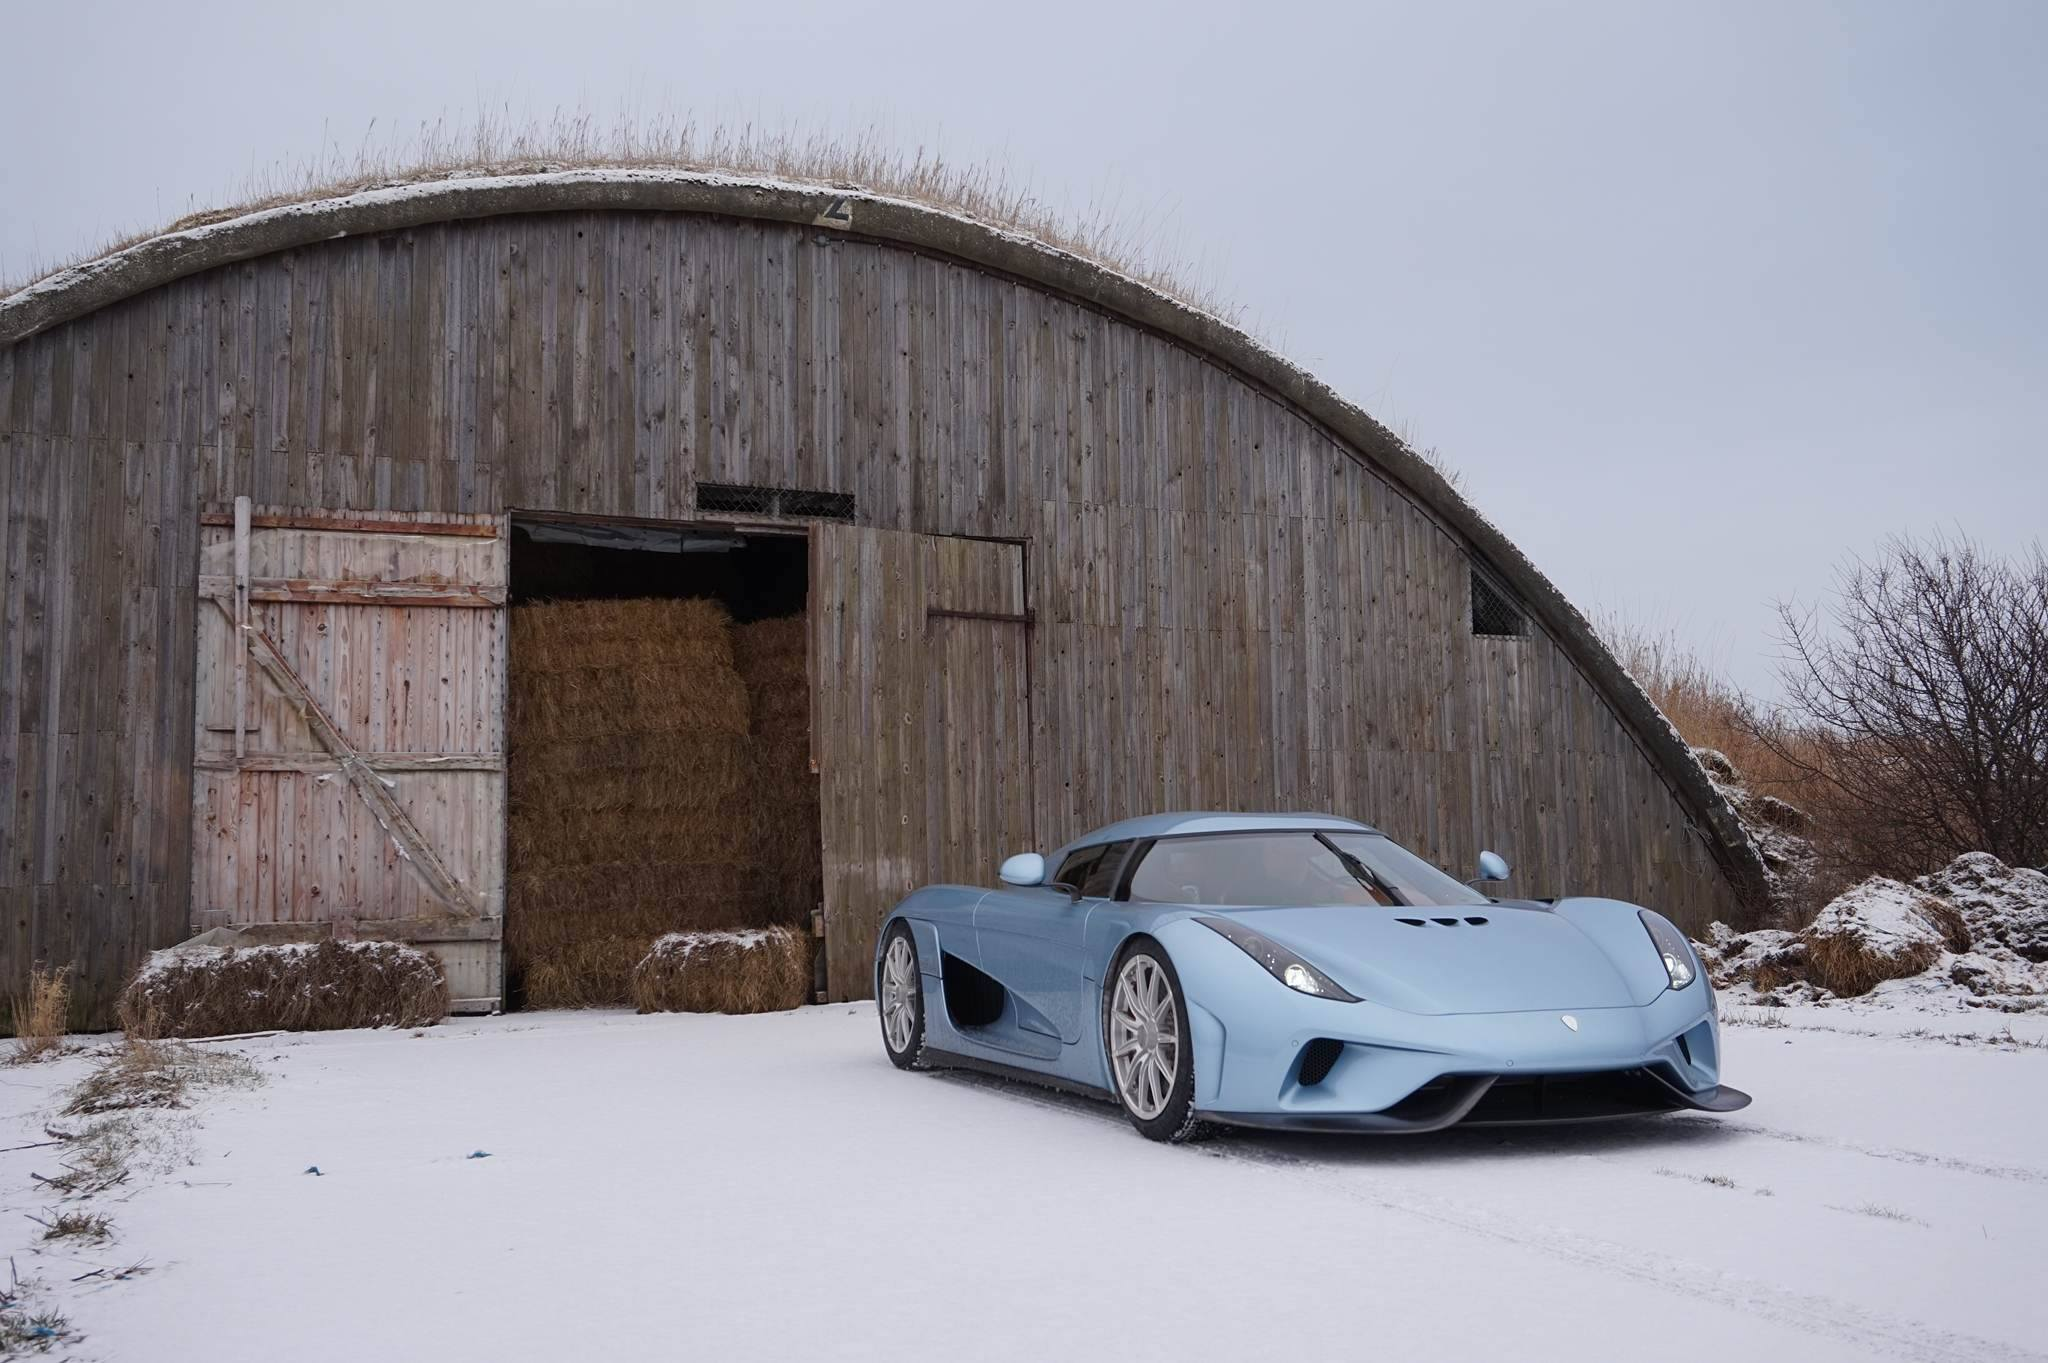 koenigsegg regera show mode with First Look Koenigsegg Regera With Christian Von Koenigsegg on Get Closer To The Cars Of The Geneva Motor Show Than Hu 1689878006 furthermore Koenigsegg Regera Hypercar First Look Details also Koenigsegg Regera Z Bezsensowna Funkcja Autoskin 5120 moreover First Look Koenigsegg Regera With Christian Von Koenigsegg also A29lbmlnc2VnZyBkb29y.